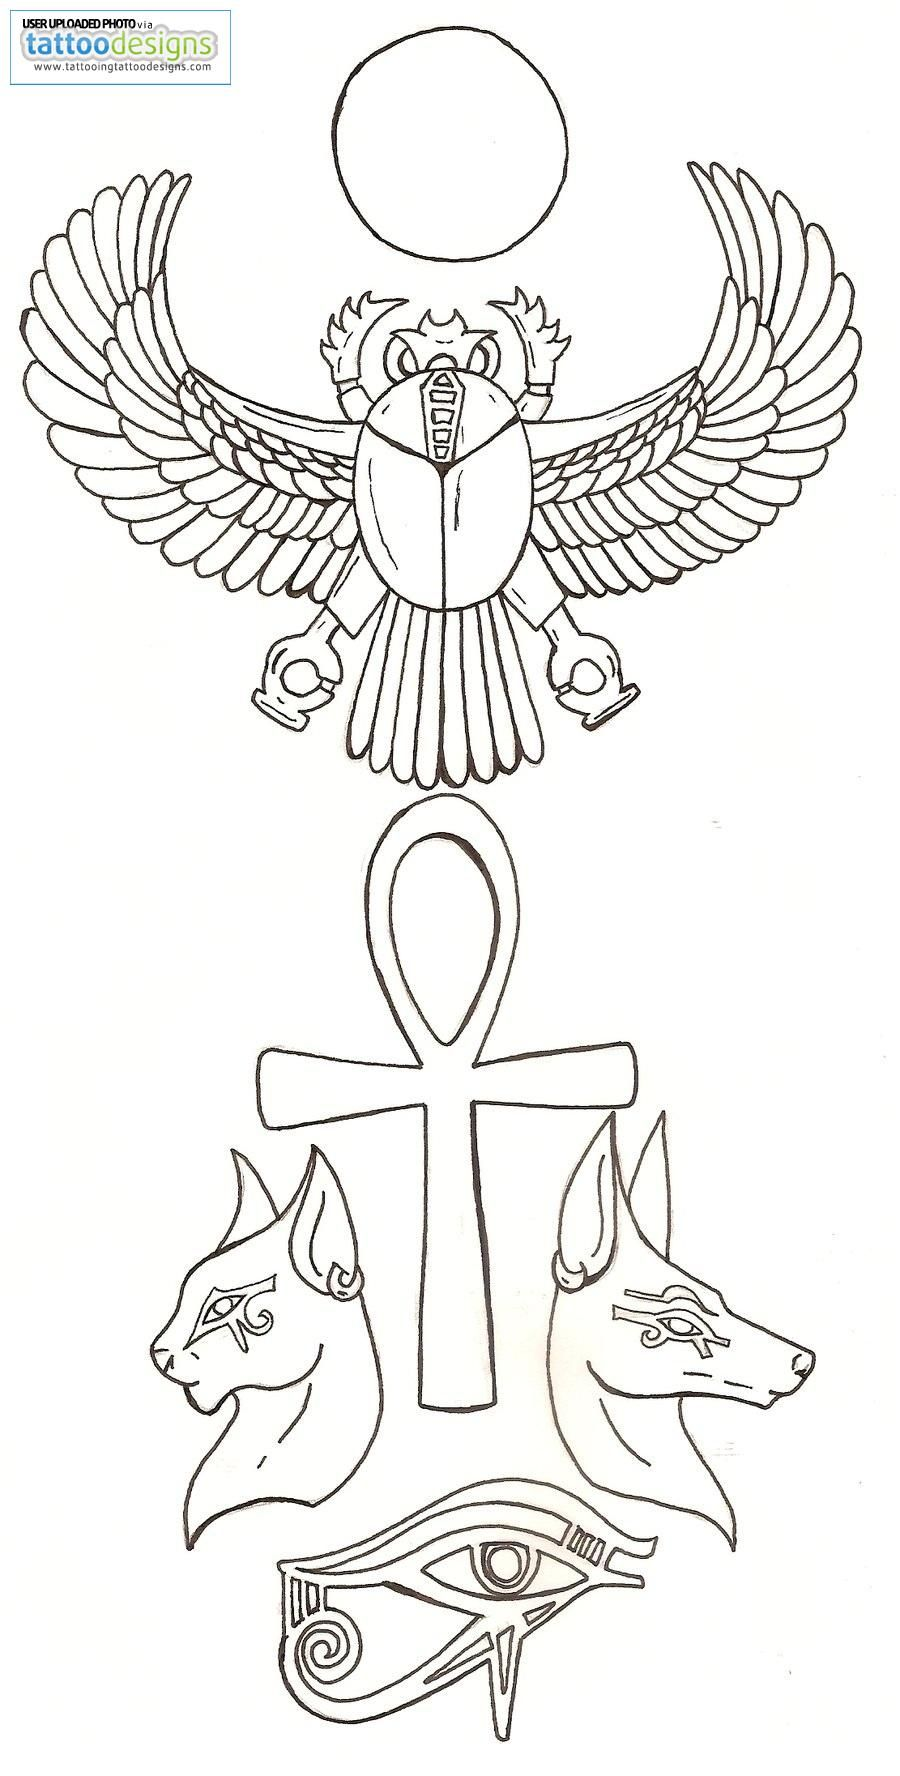 c87814e2f Third eye, scarab, ankh, bestet, Anubis and ra <3 - already have the ankh  just need to get the rest